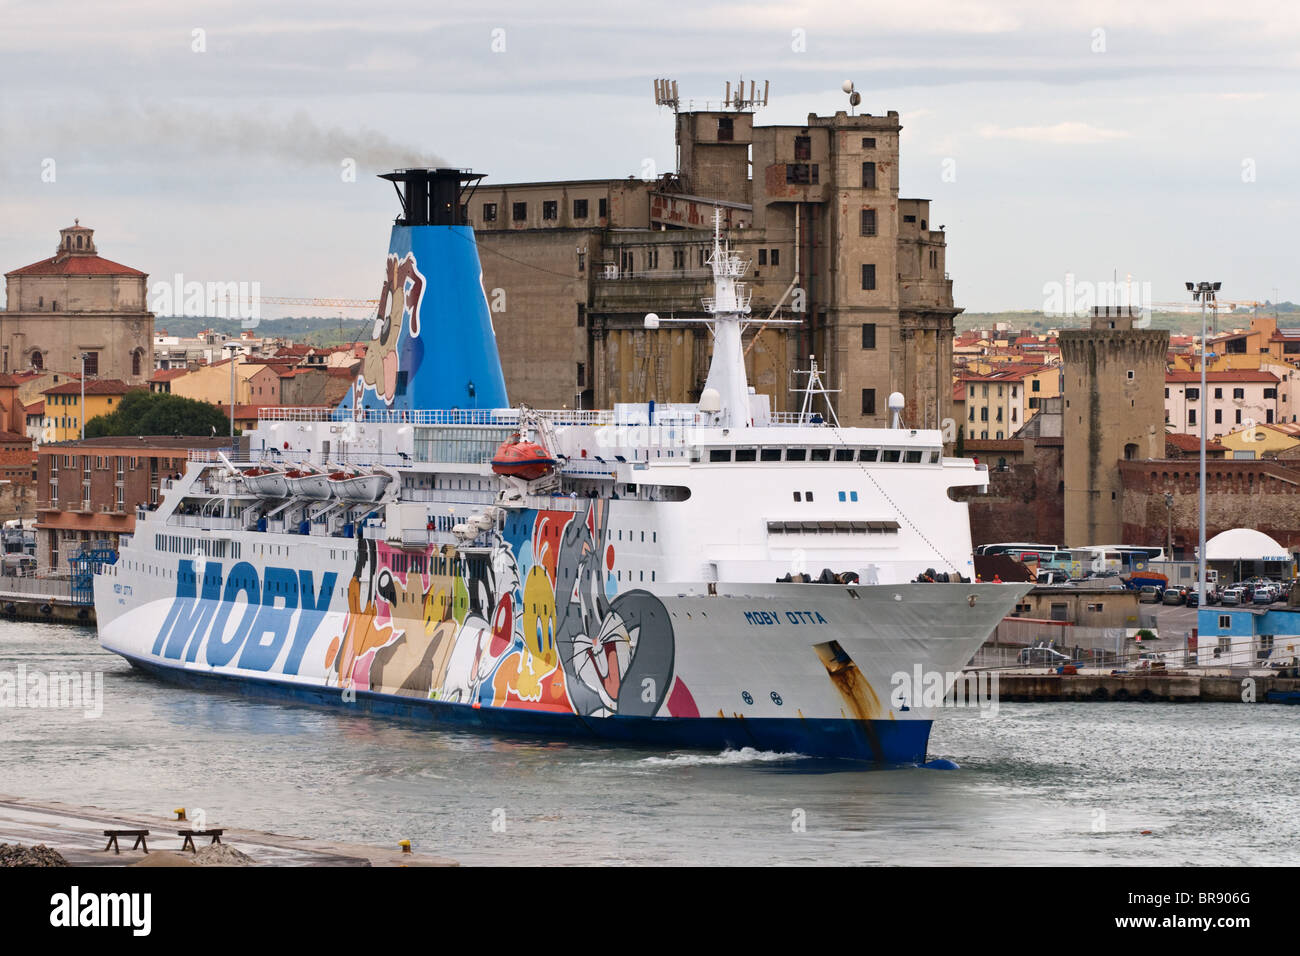 Moby Otta cruise passenger ship at the port of Livorno Italy - Stock Image